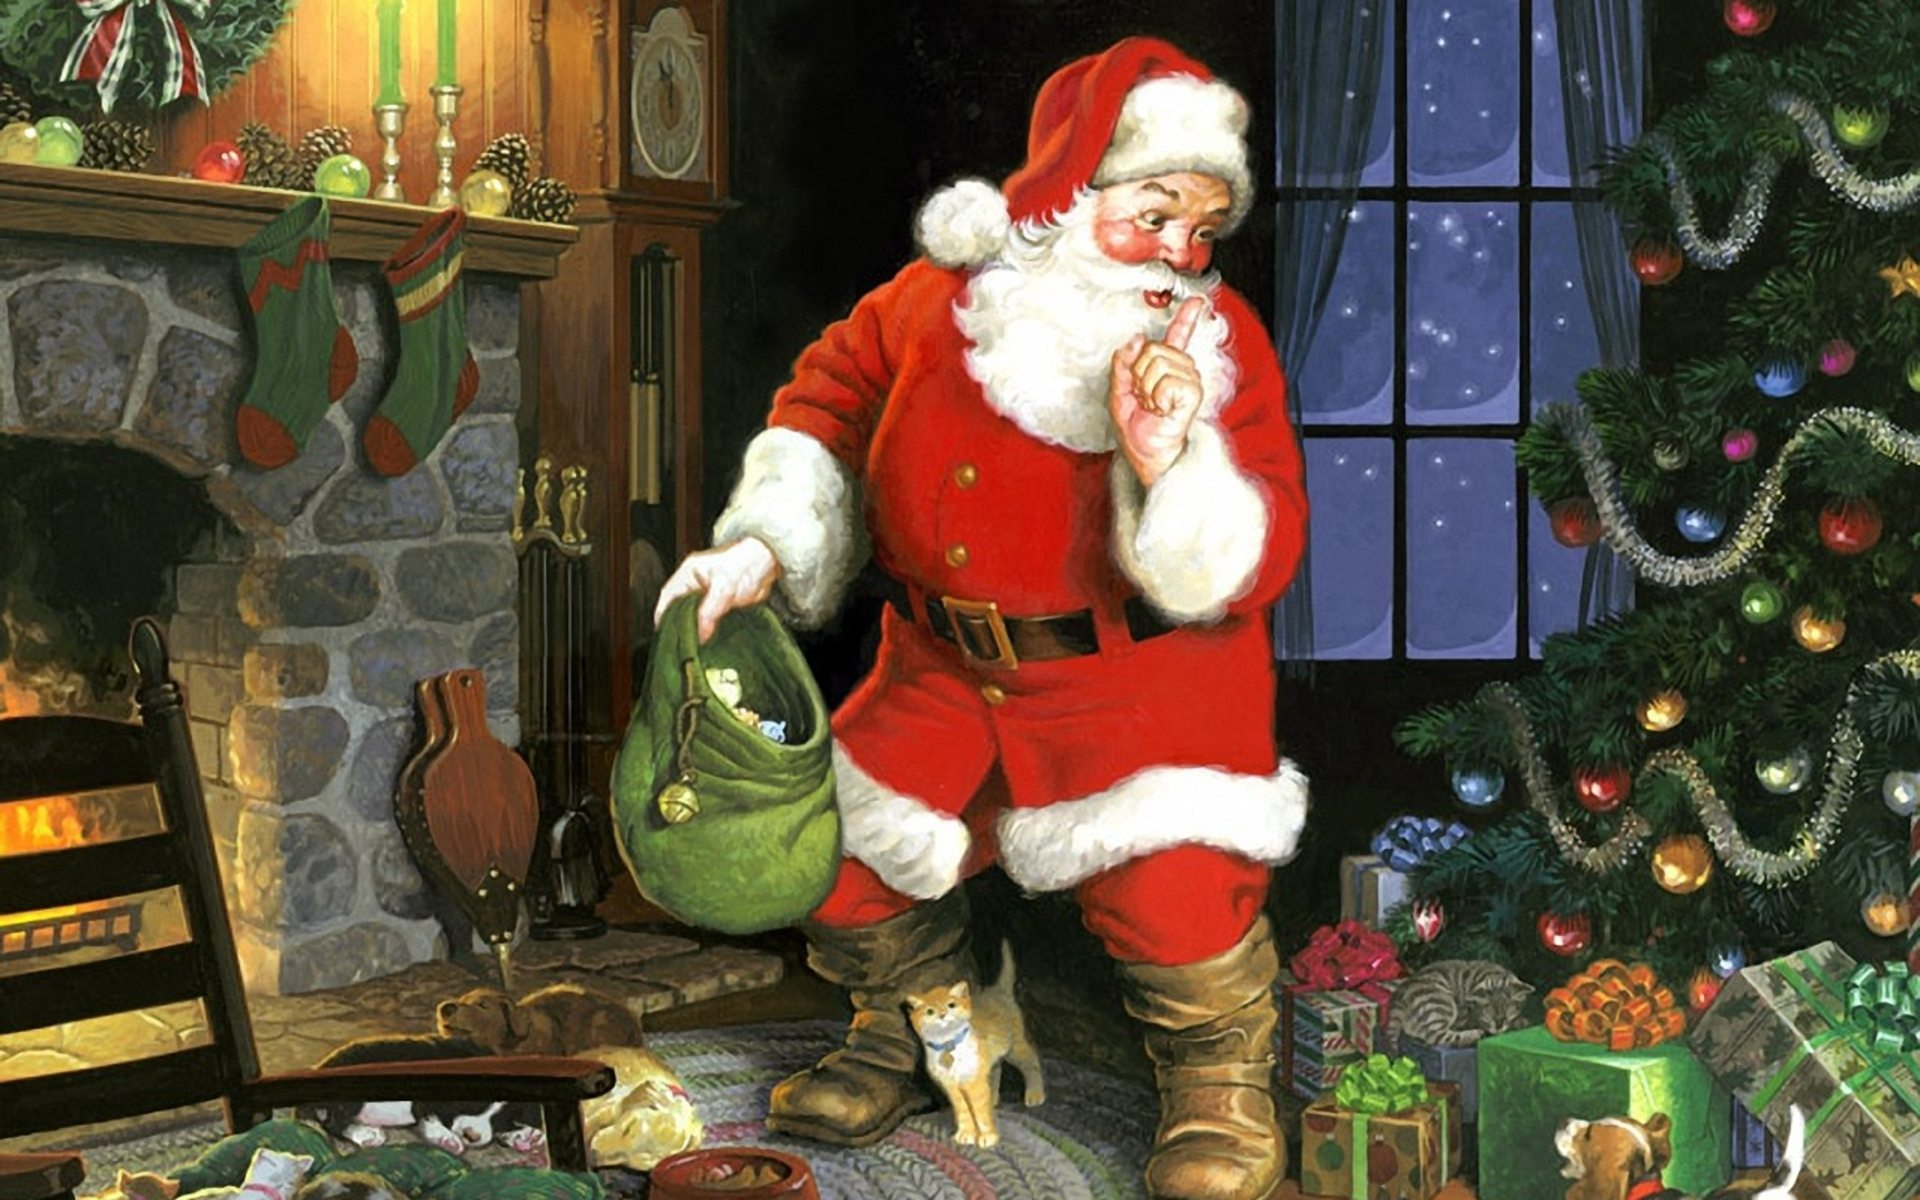 Santa Claus Hd Wallpapers 7wallpapers Net